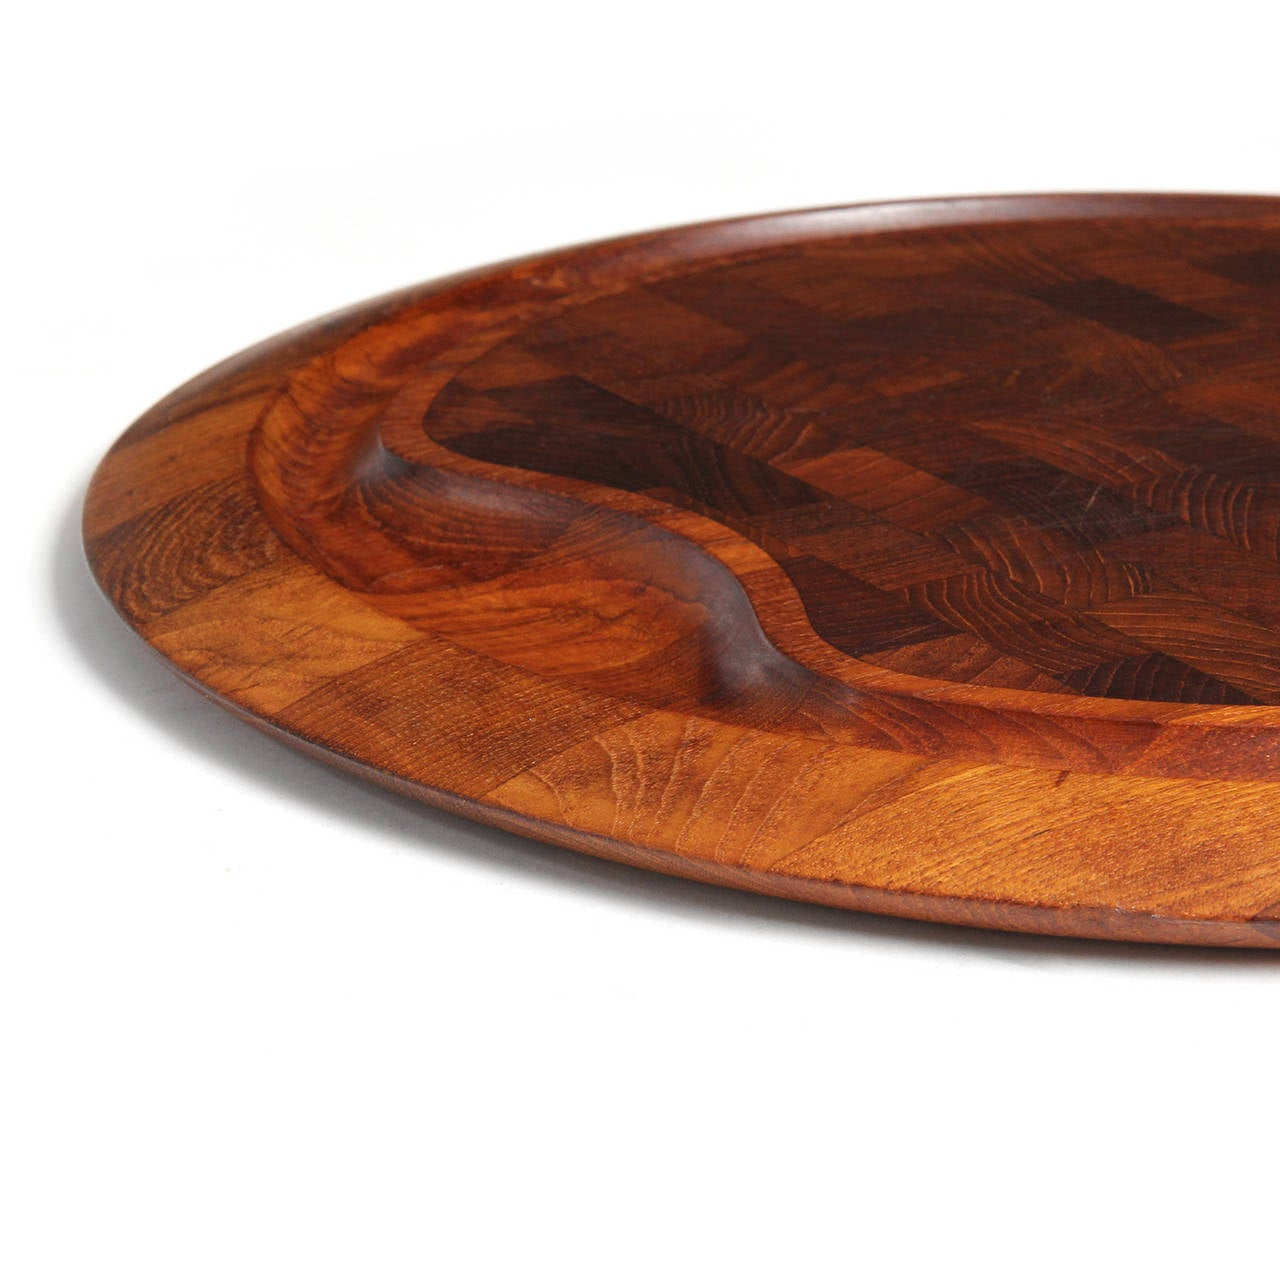 Scandinavian Modern Mutenye Cheese Board by Jens Quistgaard For Sale